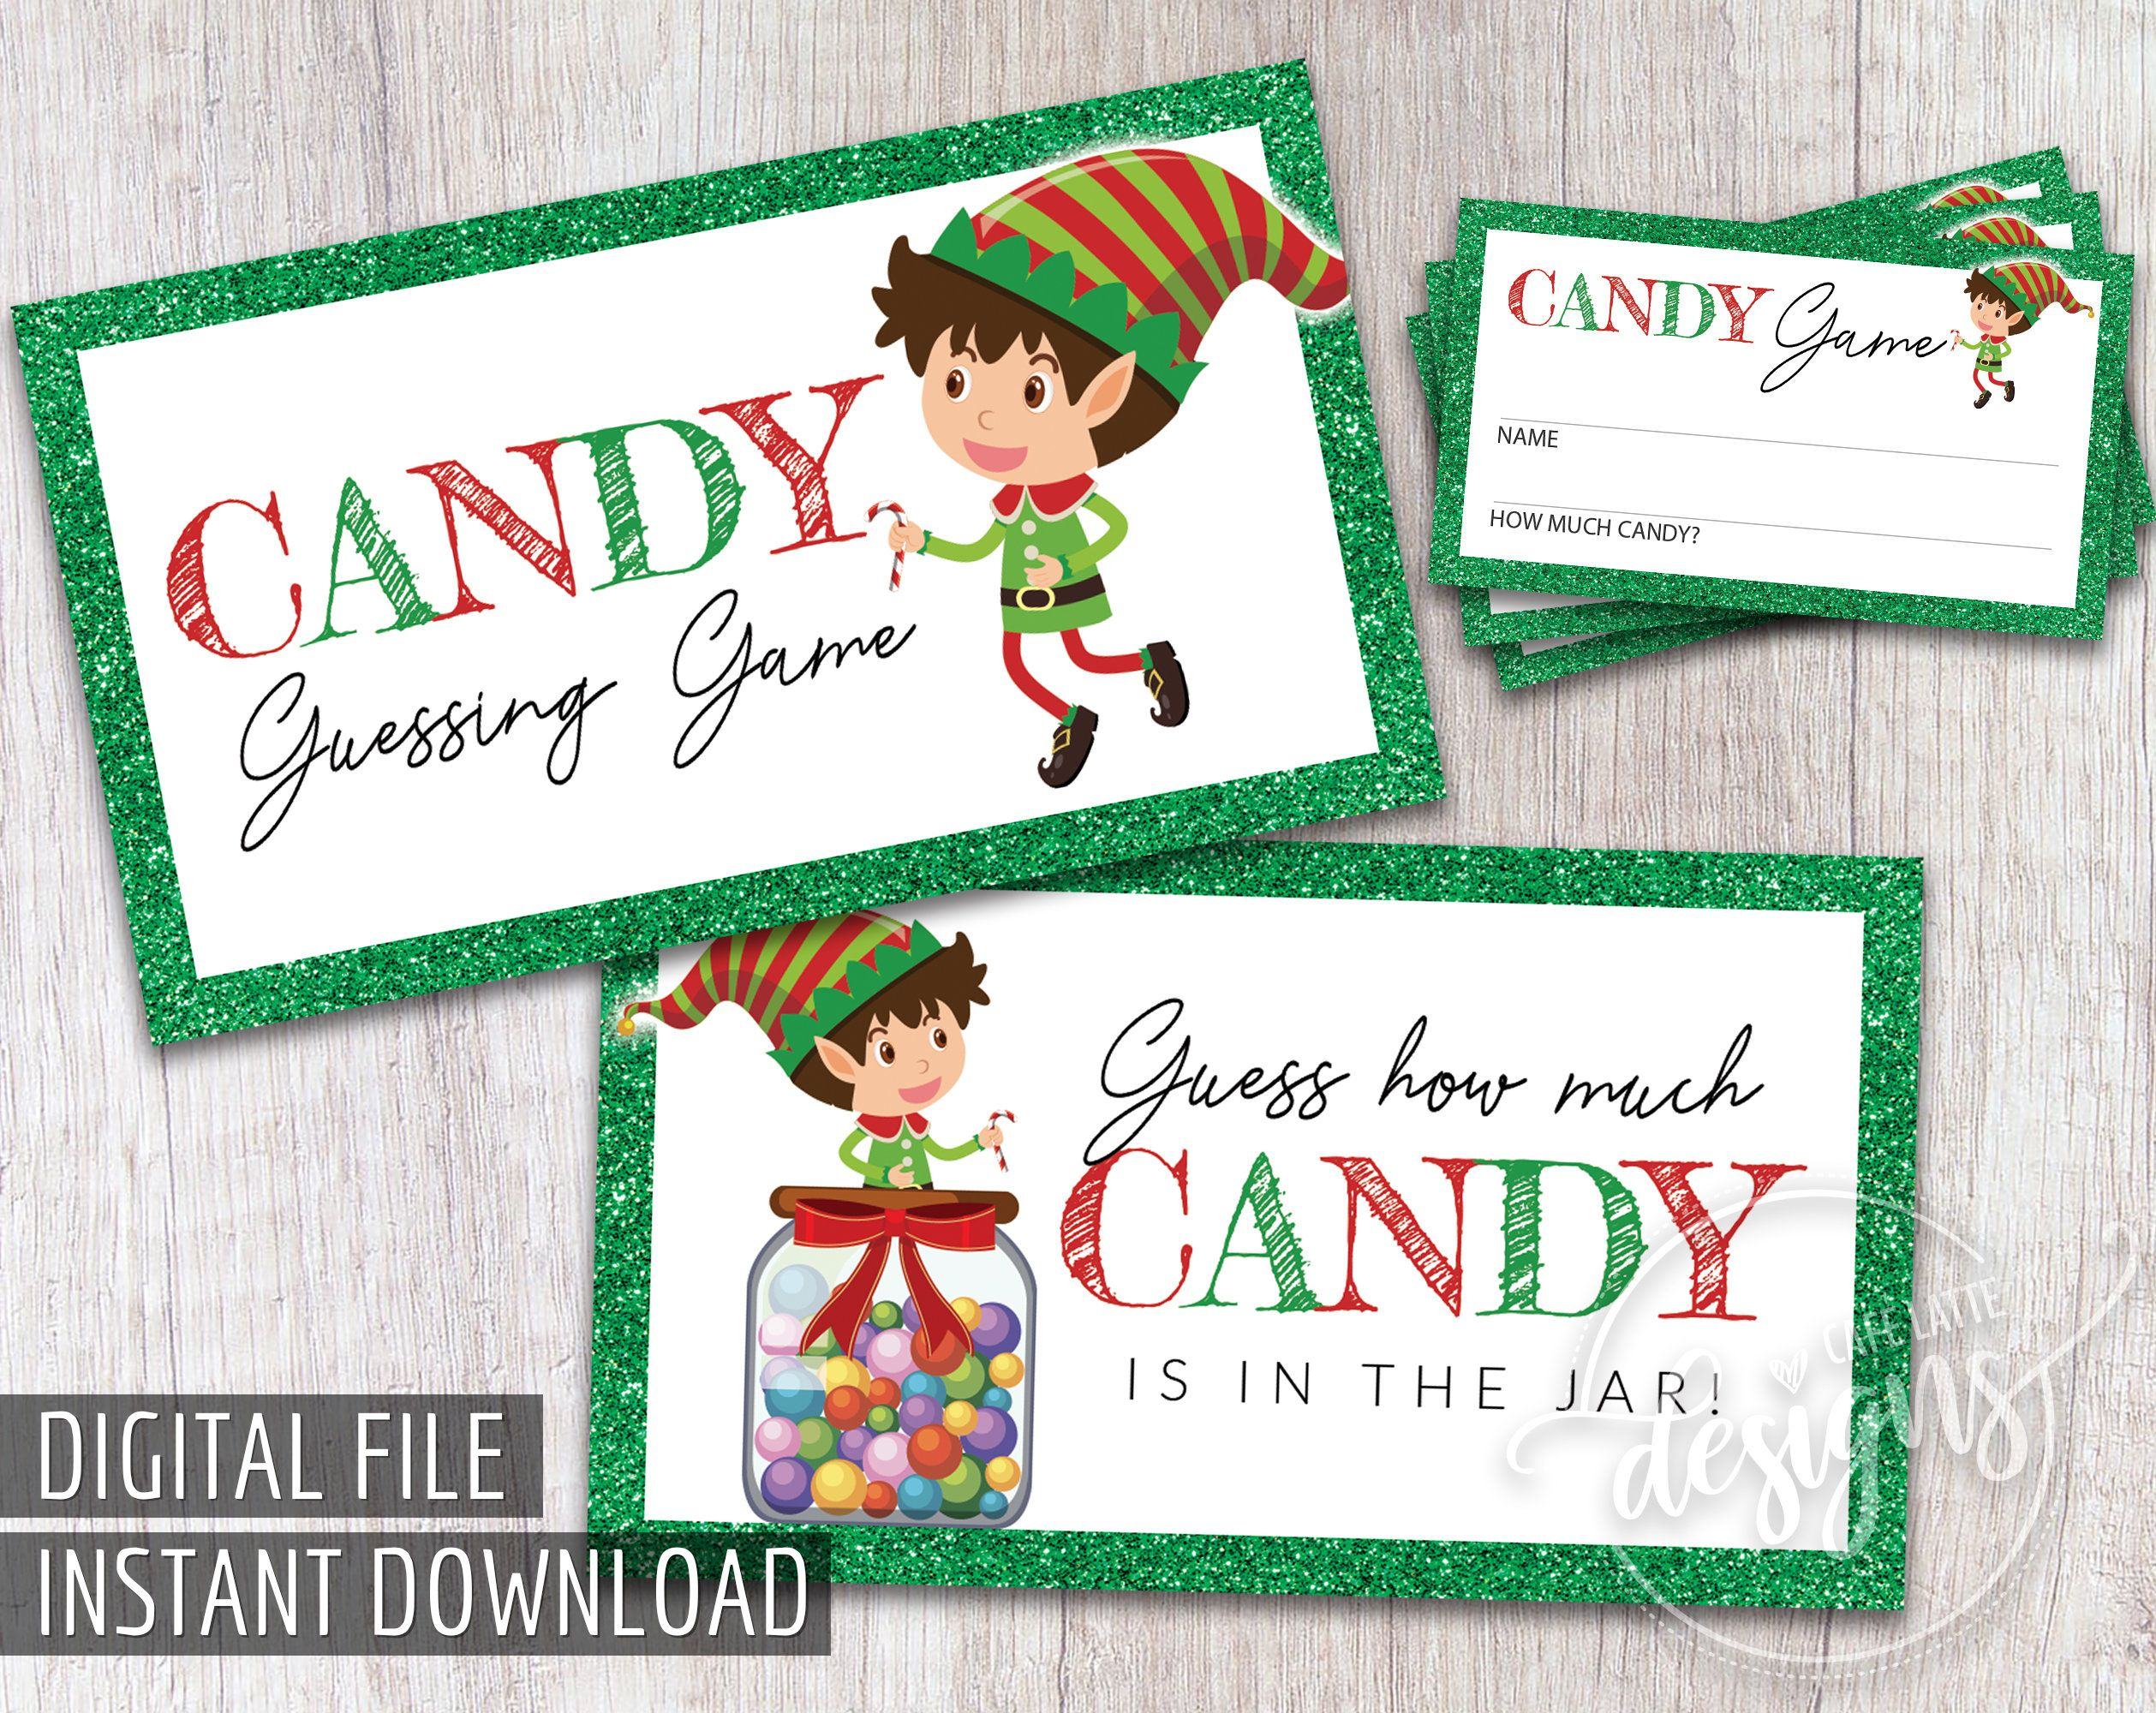 Christmas Candy Guessing Game Printable Christmas Games Party Printables Guess How Much Candy Is In The Jar December Birthday Candy Game Christmas Party Games For Groups Christmas Party Games For Kids